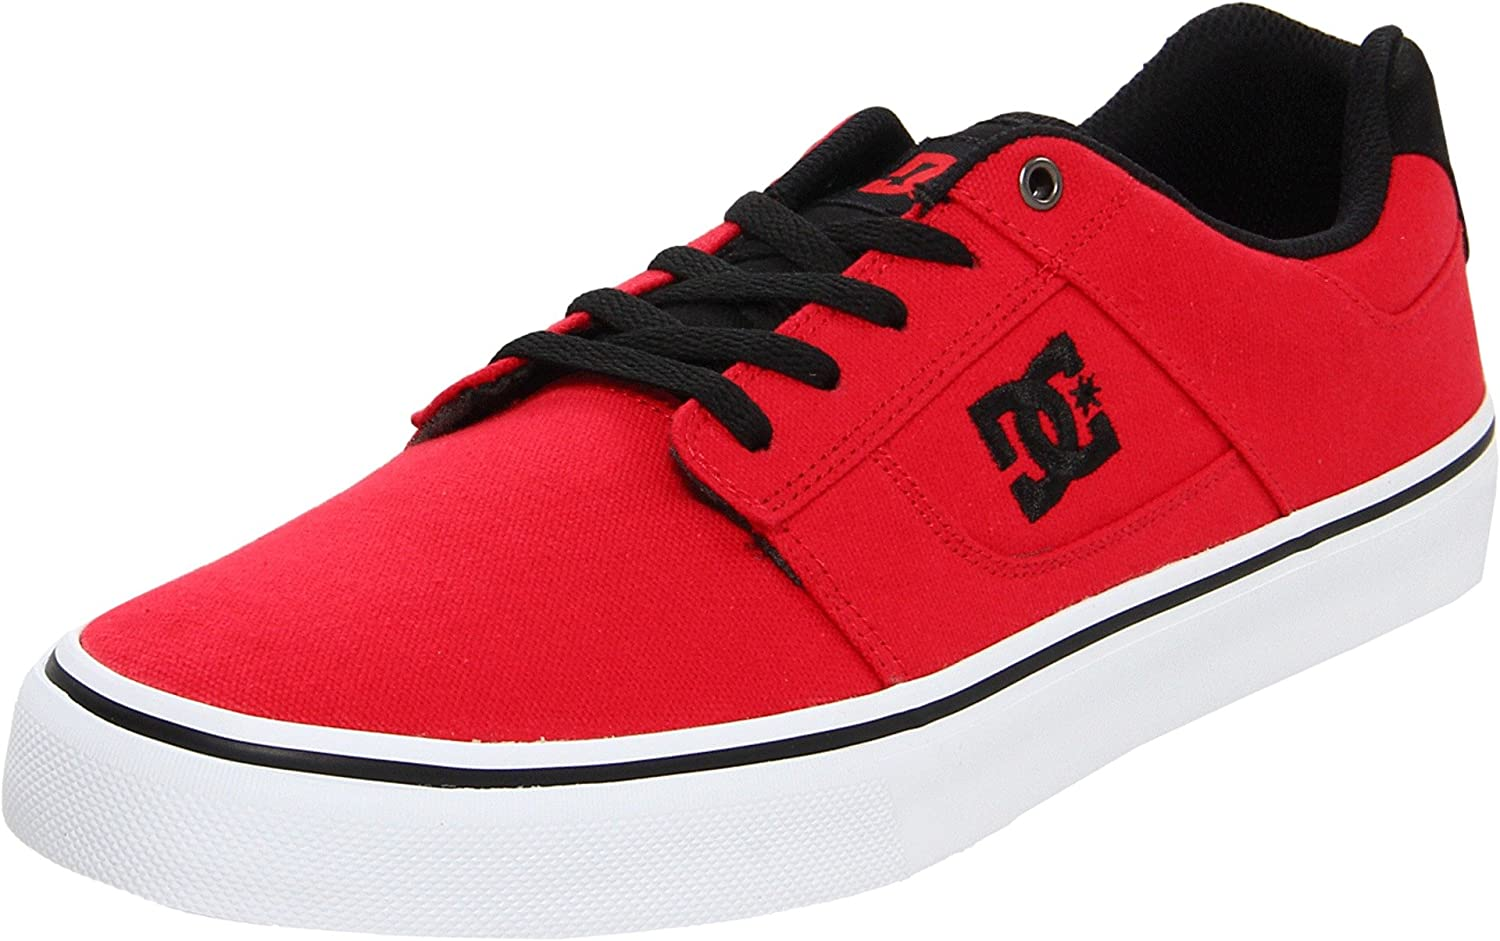 DC Men's Bridge TX Sneaker 6 D(M) US|Athletic Red/Black